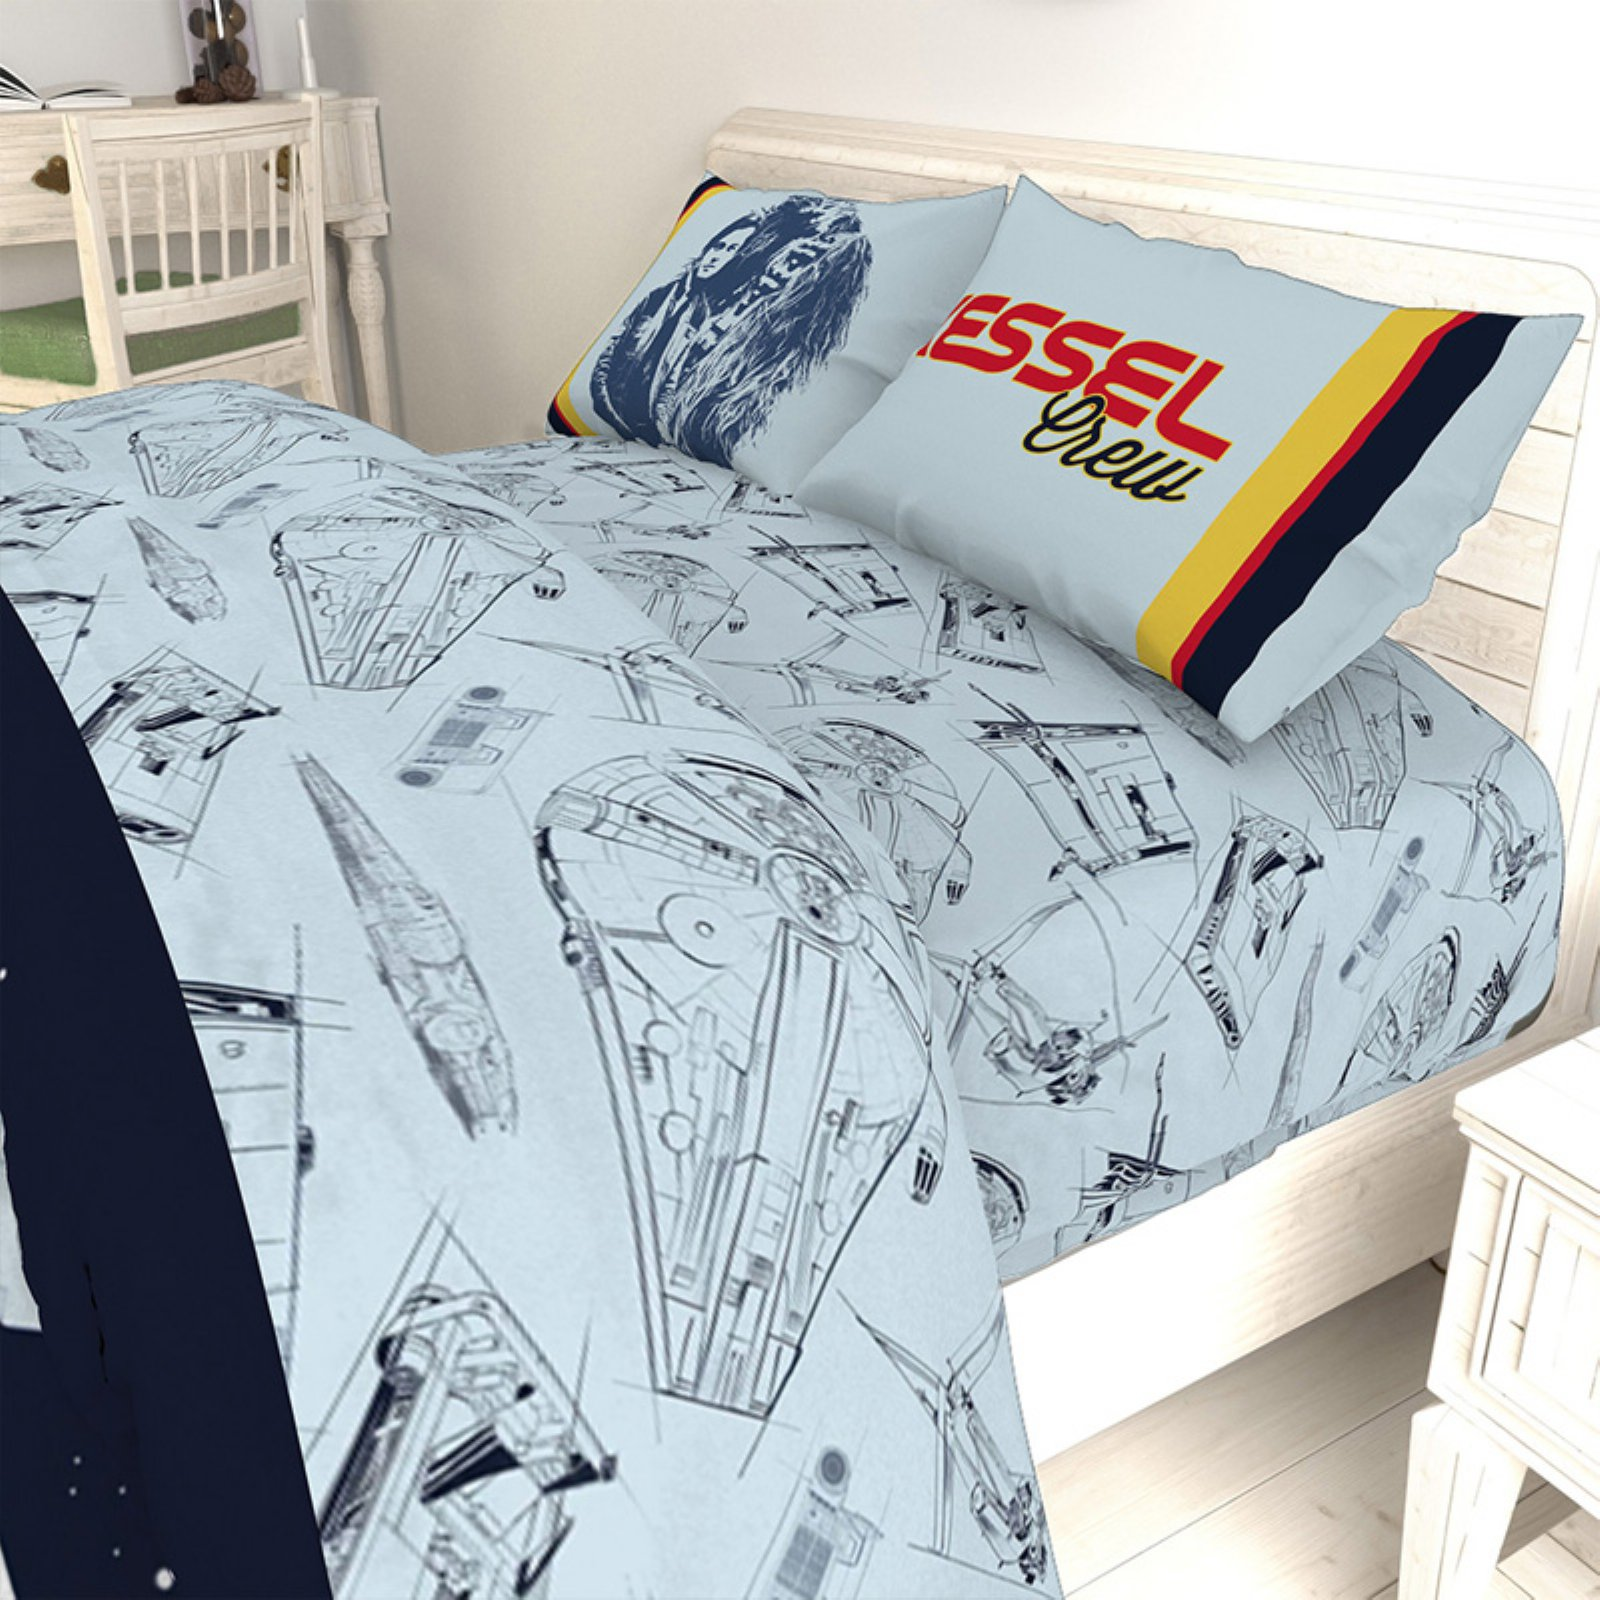 Solo: ASWS Kessel Crew Twin Bed Sheet Set 3